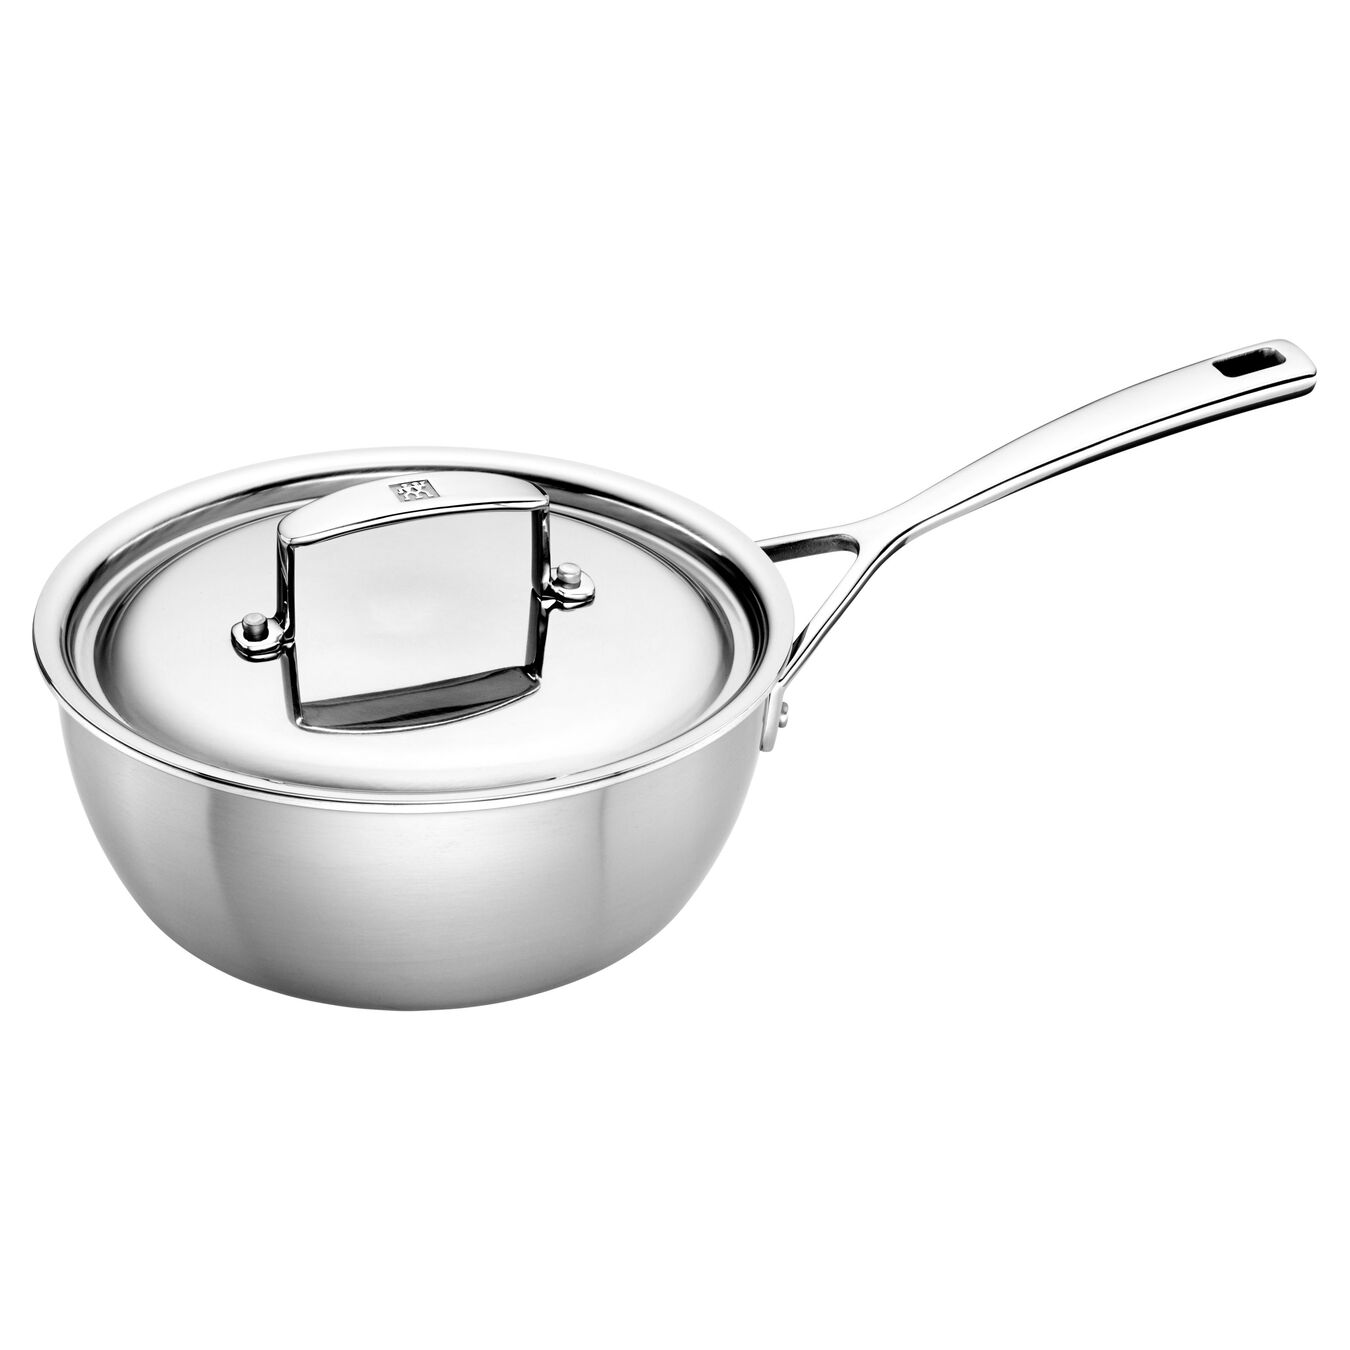 5 Ply, 18/10 Stainless Steel, 1.75 qt, Sauteuse,,large 2